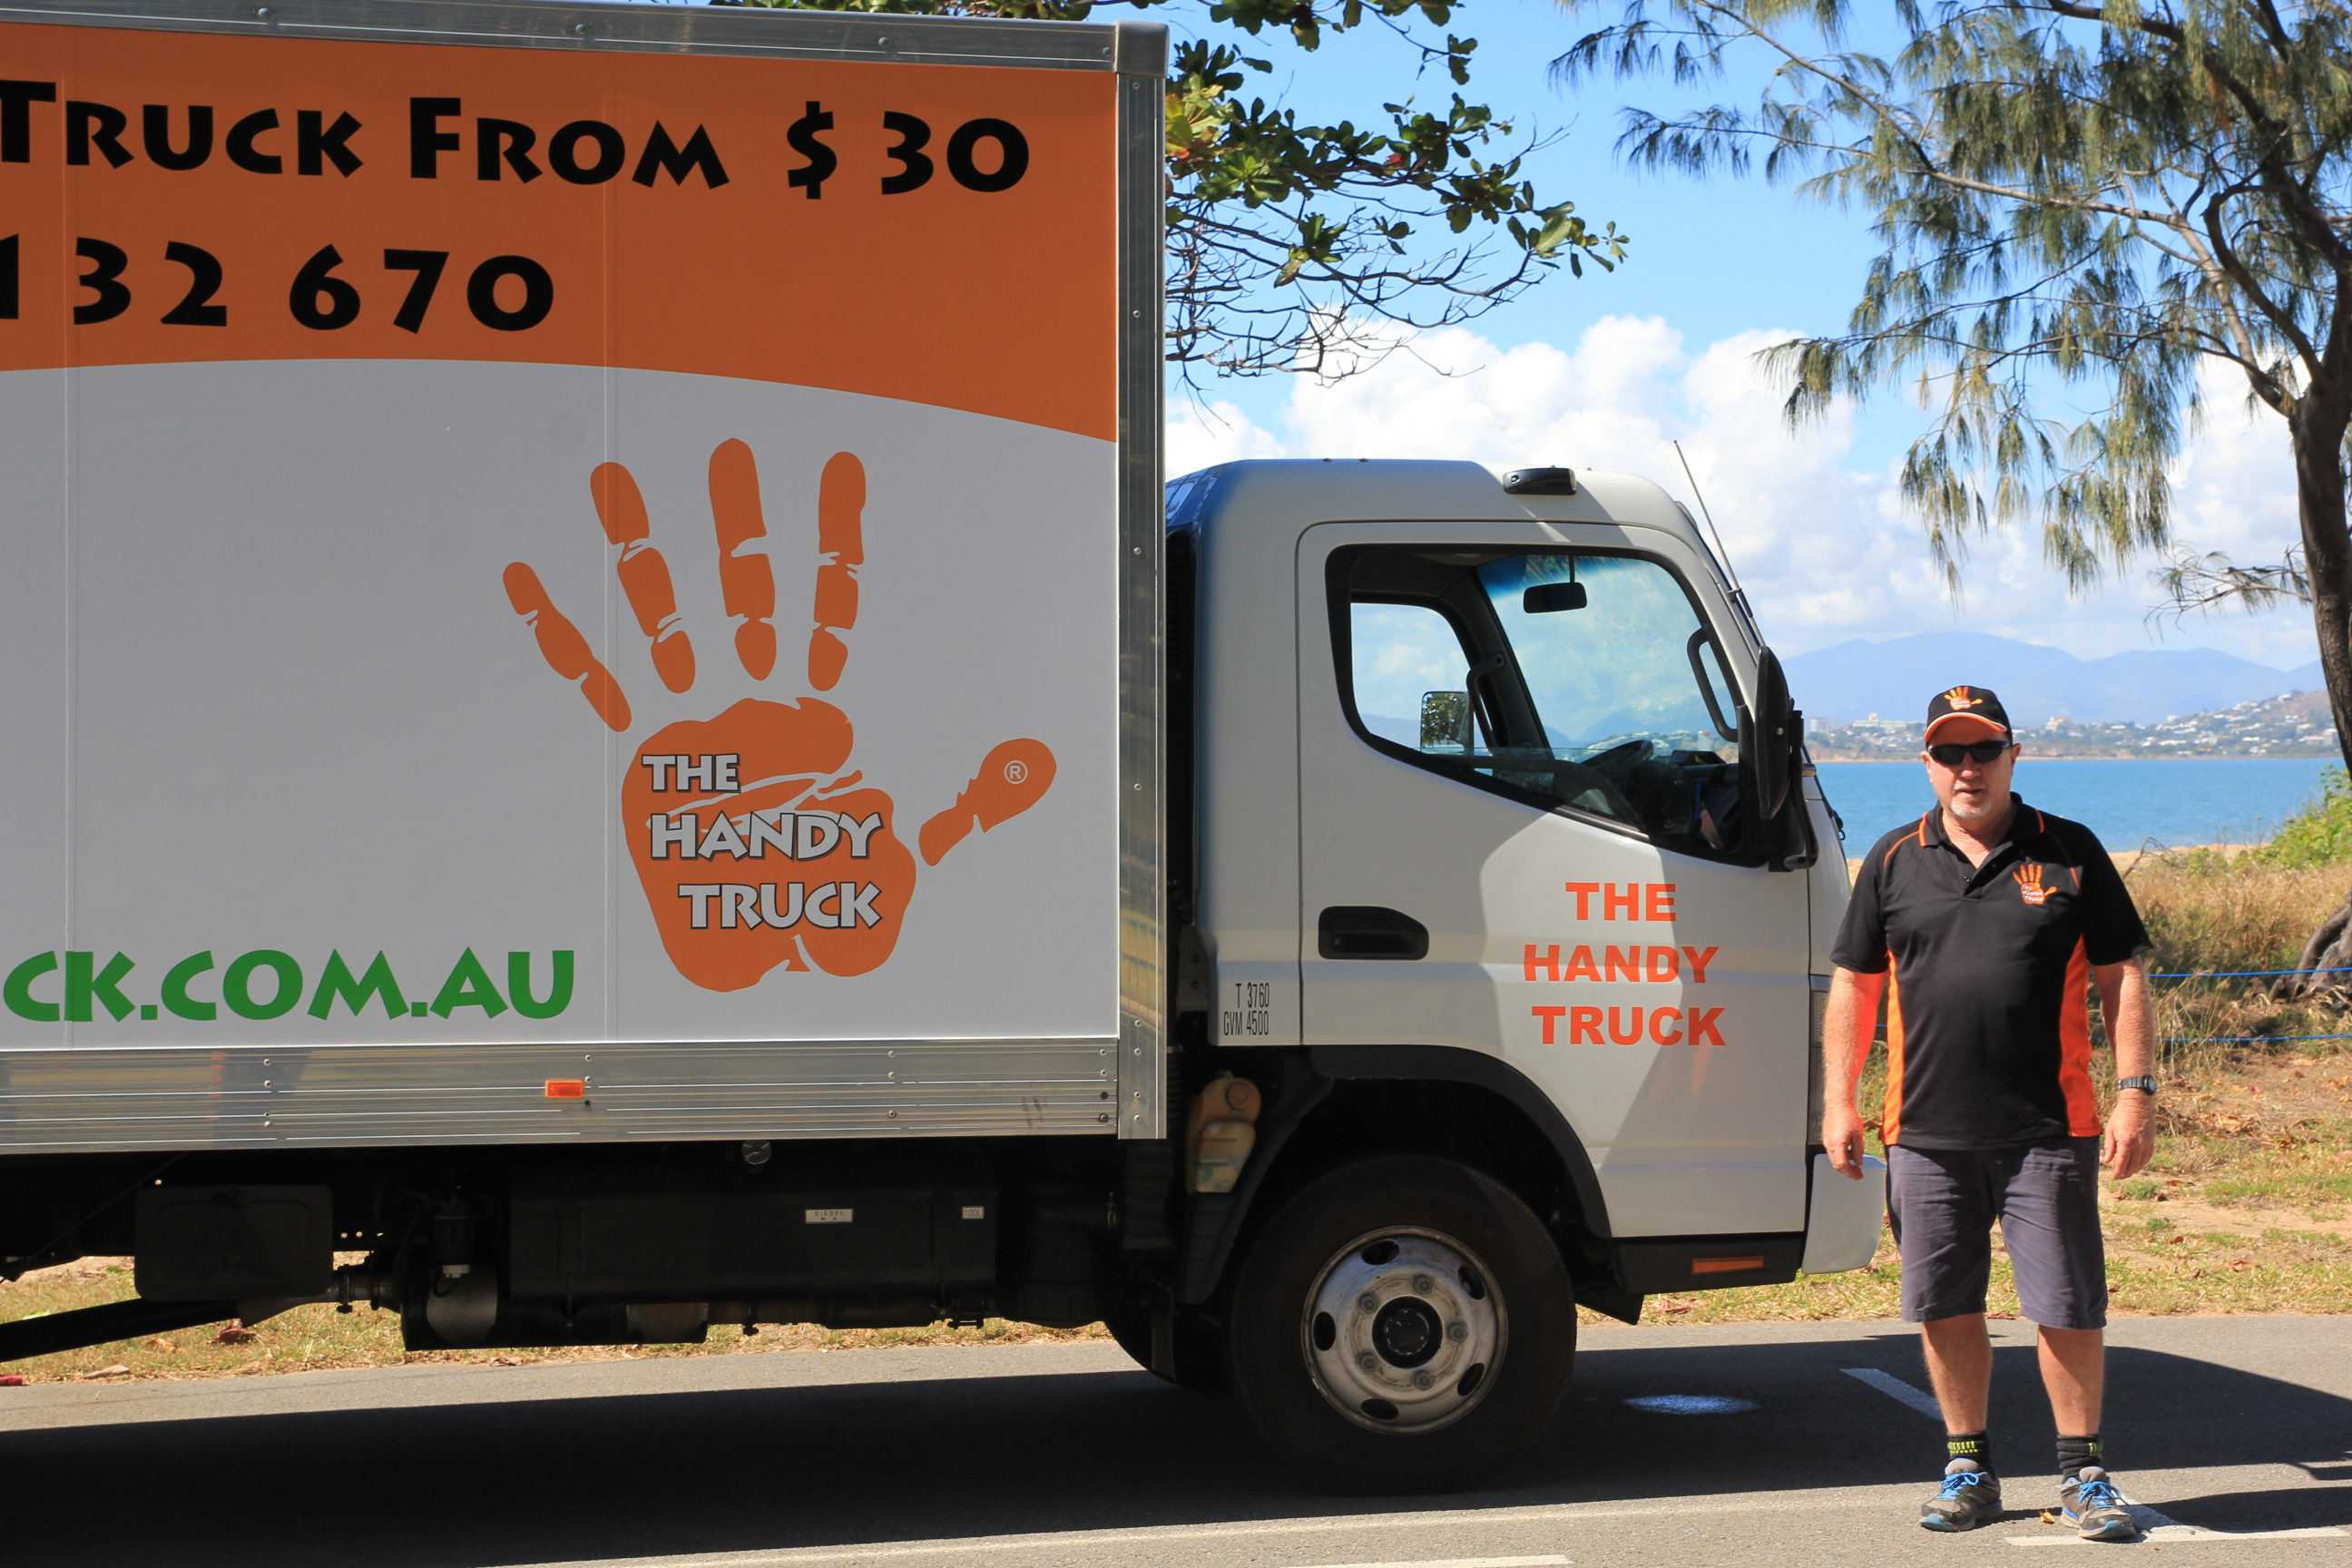 Your delivery and removalist service in Townsville